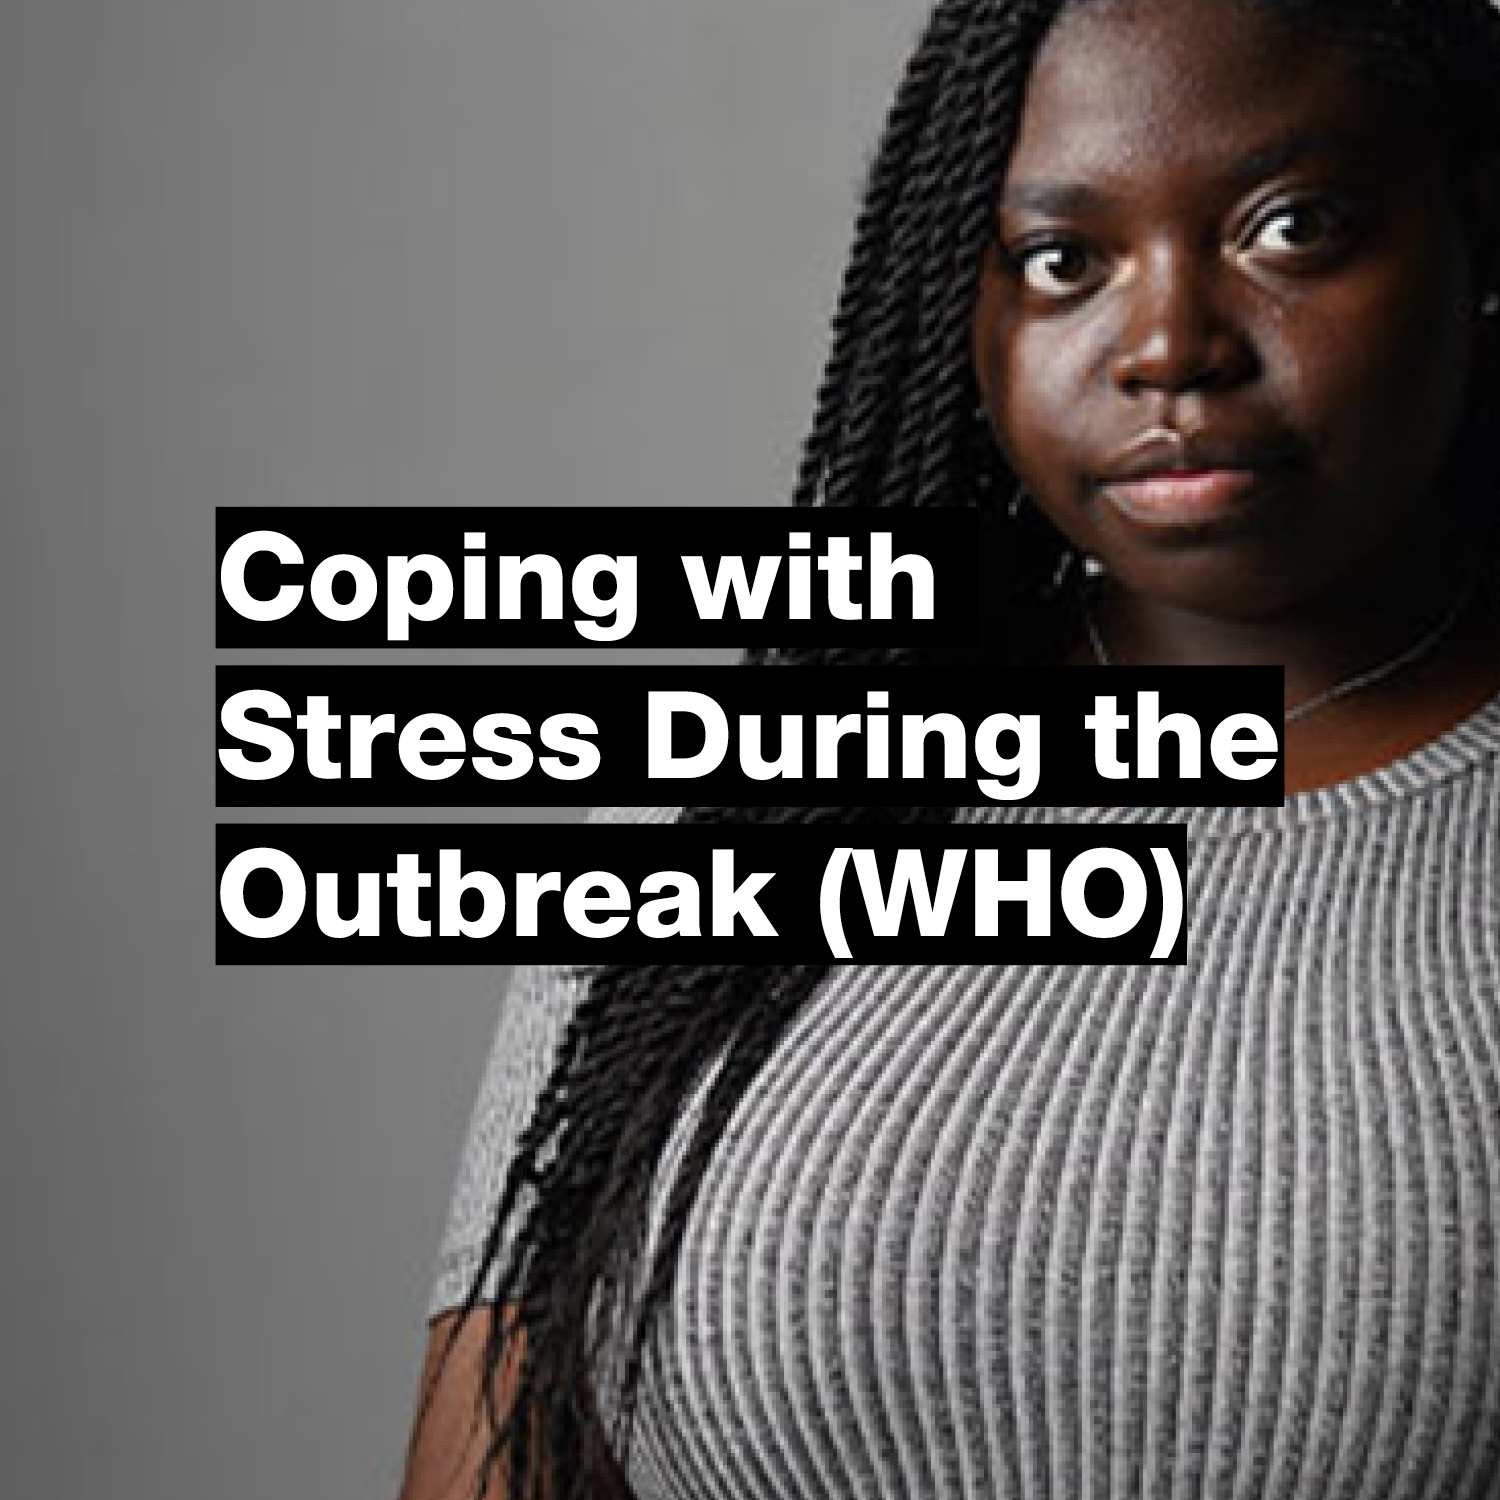 Coping with Stress During the Outbreak (WHO)